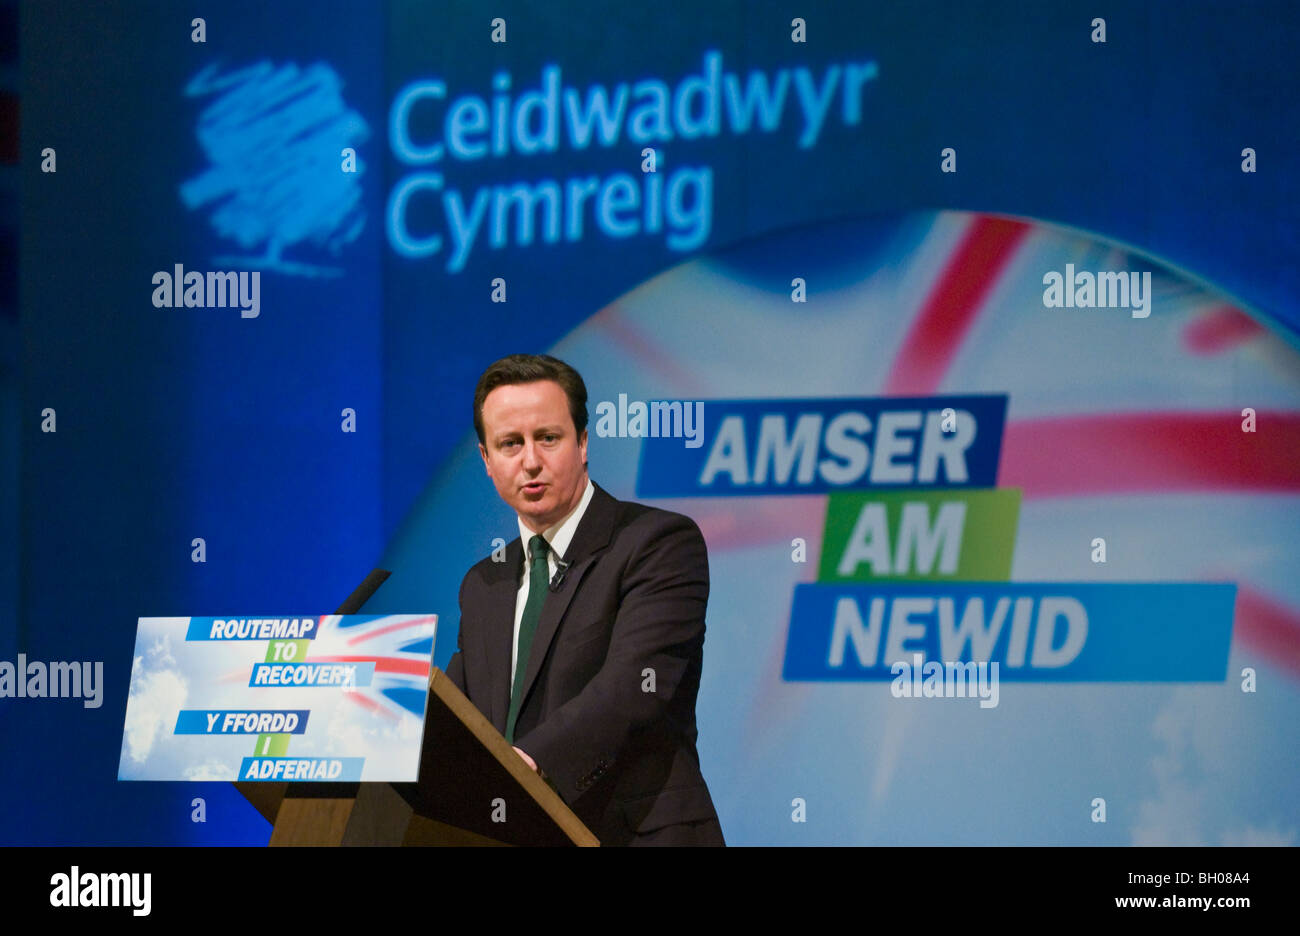 David Cameron MP for Witney Tory leader speaking at Welsh Conservative Party Conference in Cardiff South Wales UK - Stock Image